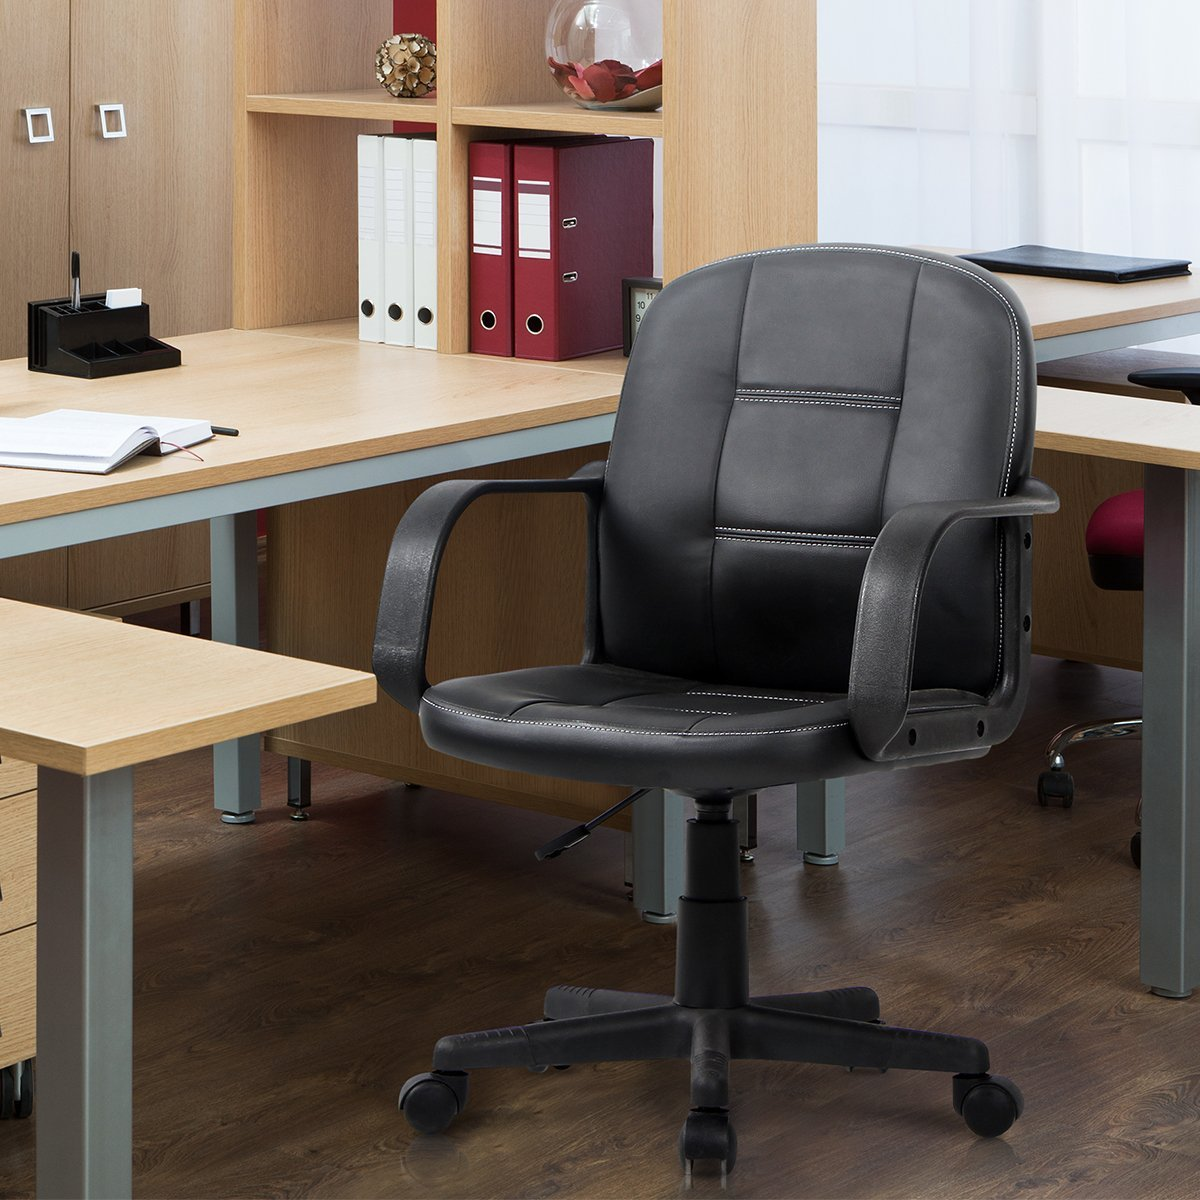 Viva Office Chair Deal Alert Viva Office Ergonomic Mid Back Office Chair